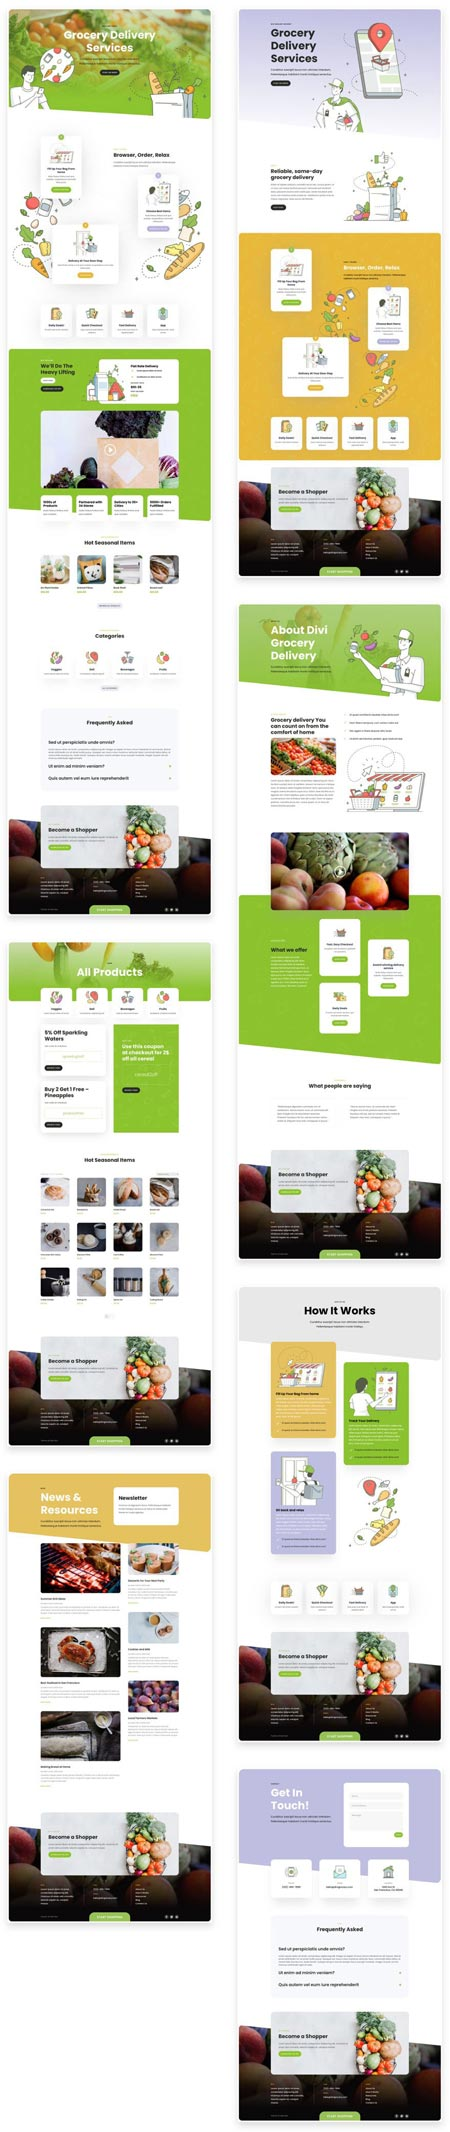 Divi Grocery Delivery Layout Pack